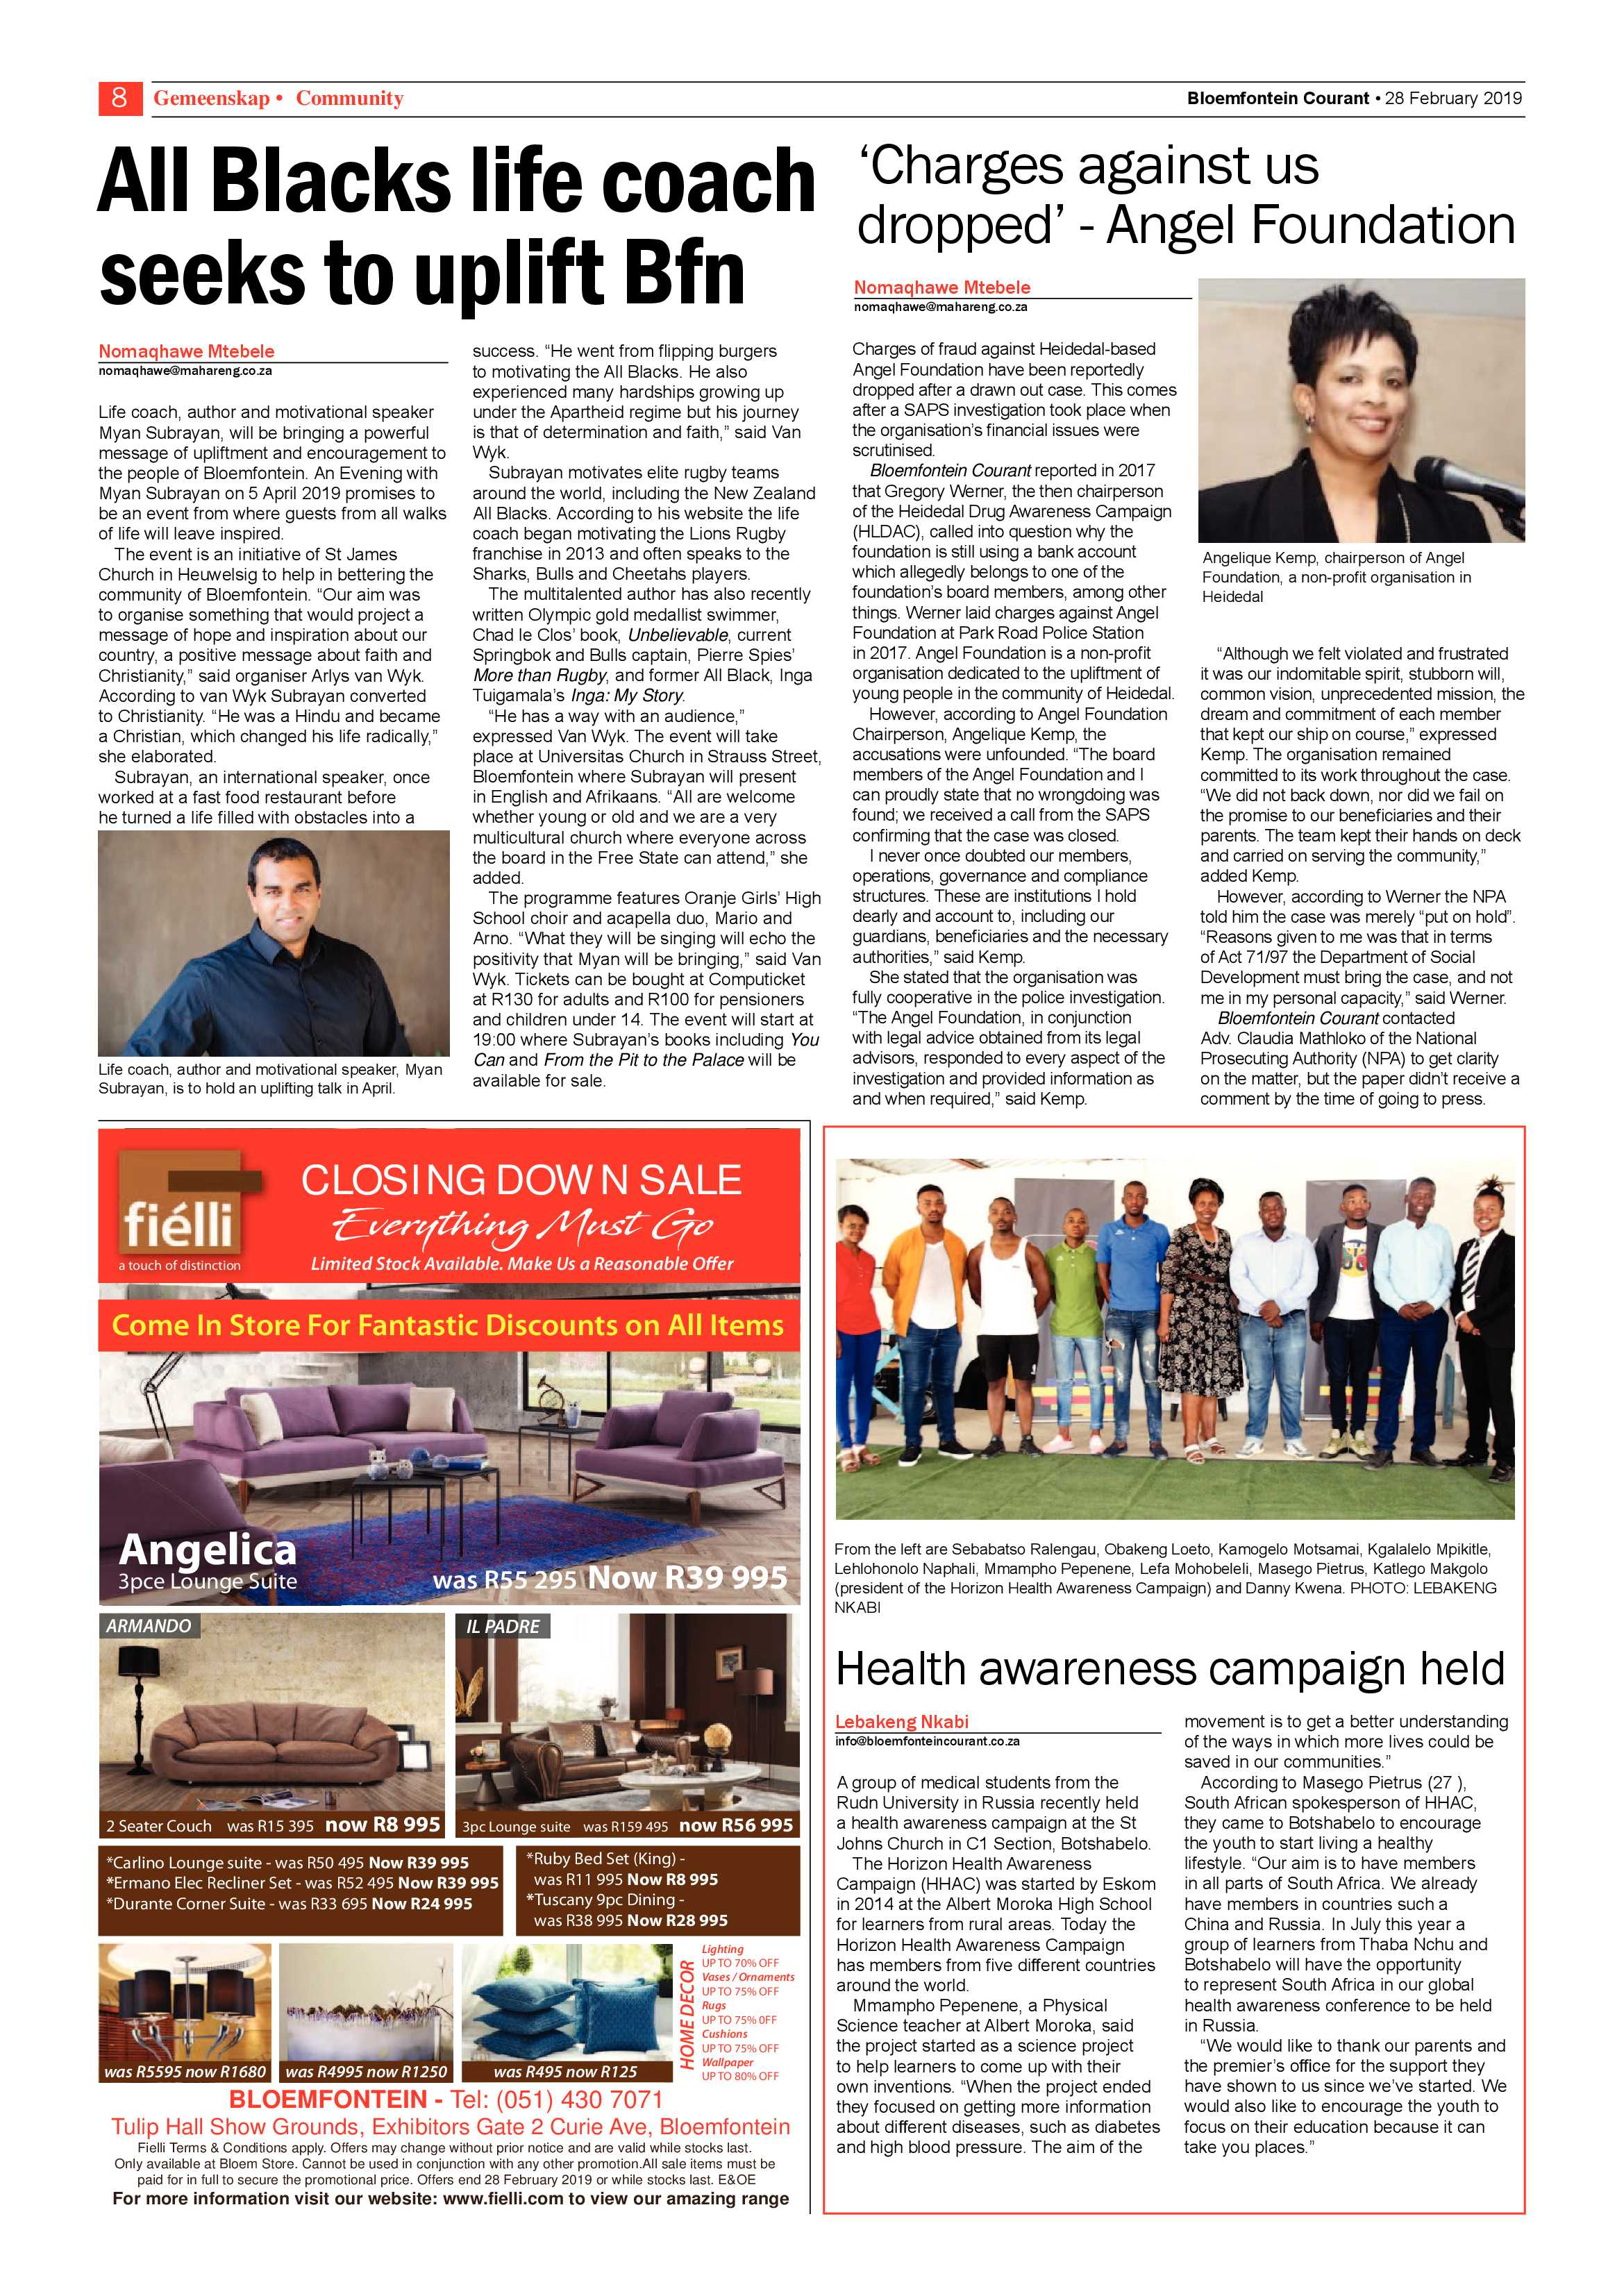 courant-28-february-2019-epapers-page-8